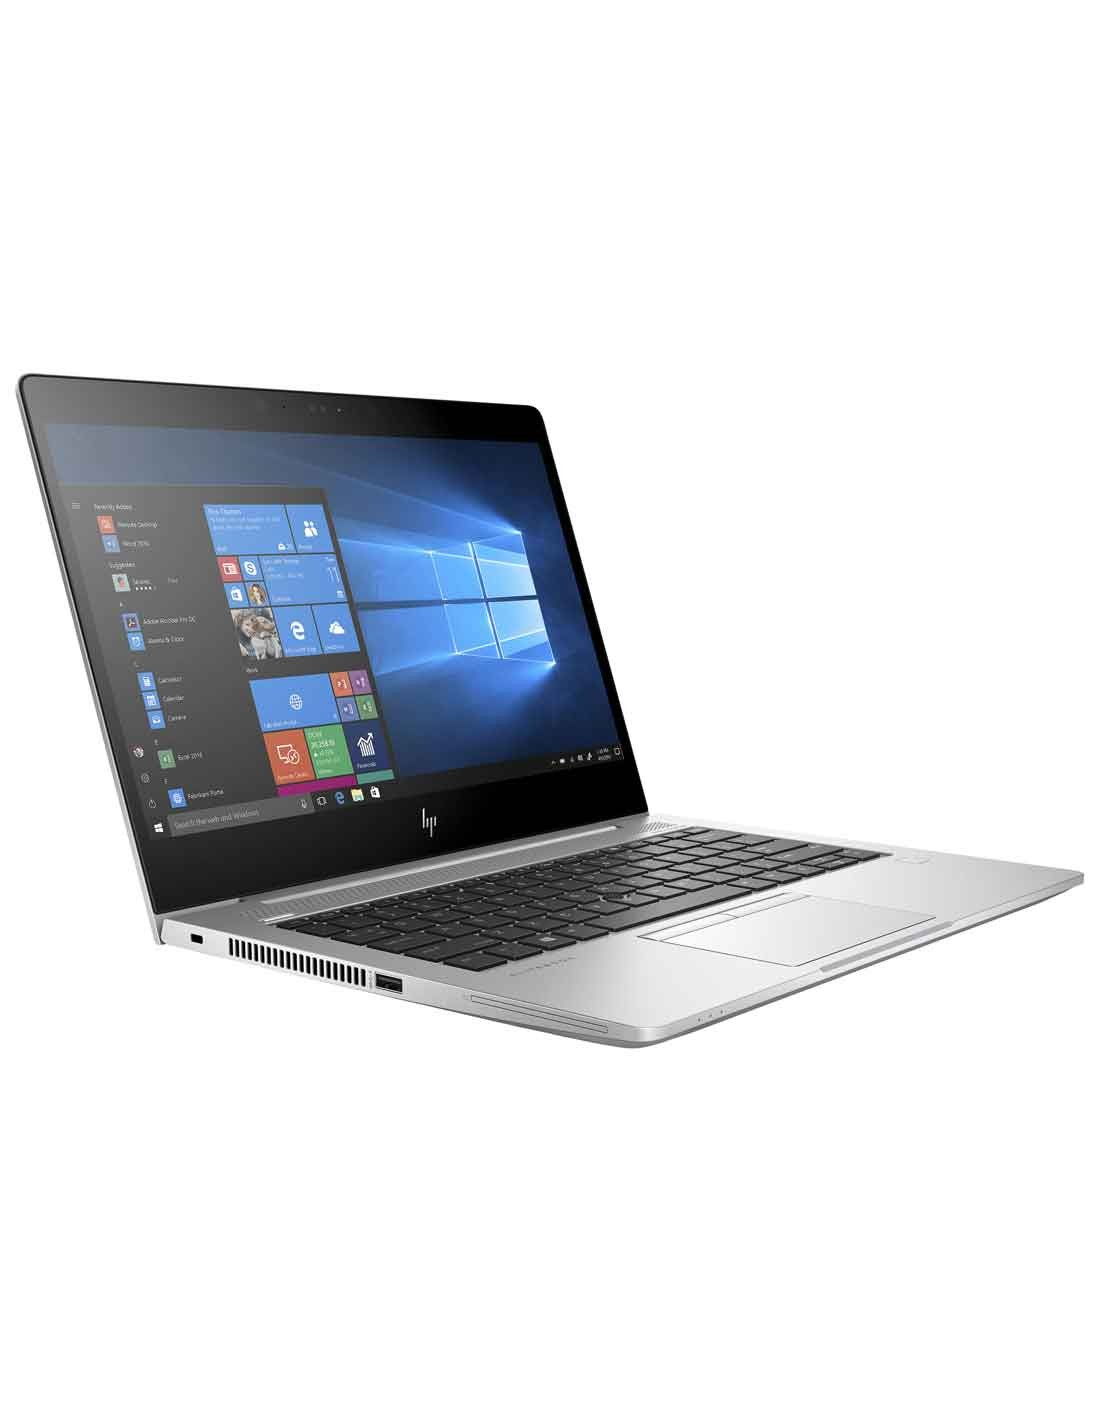 HP EliteBook 840 G5 Notebook 1TB SSD at the cheapest price and fast free delivery in Dubai